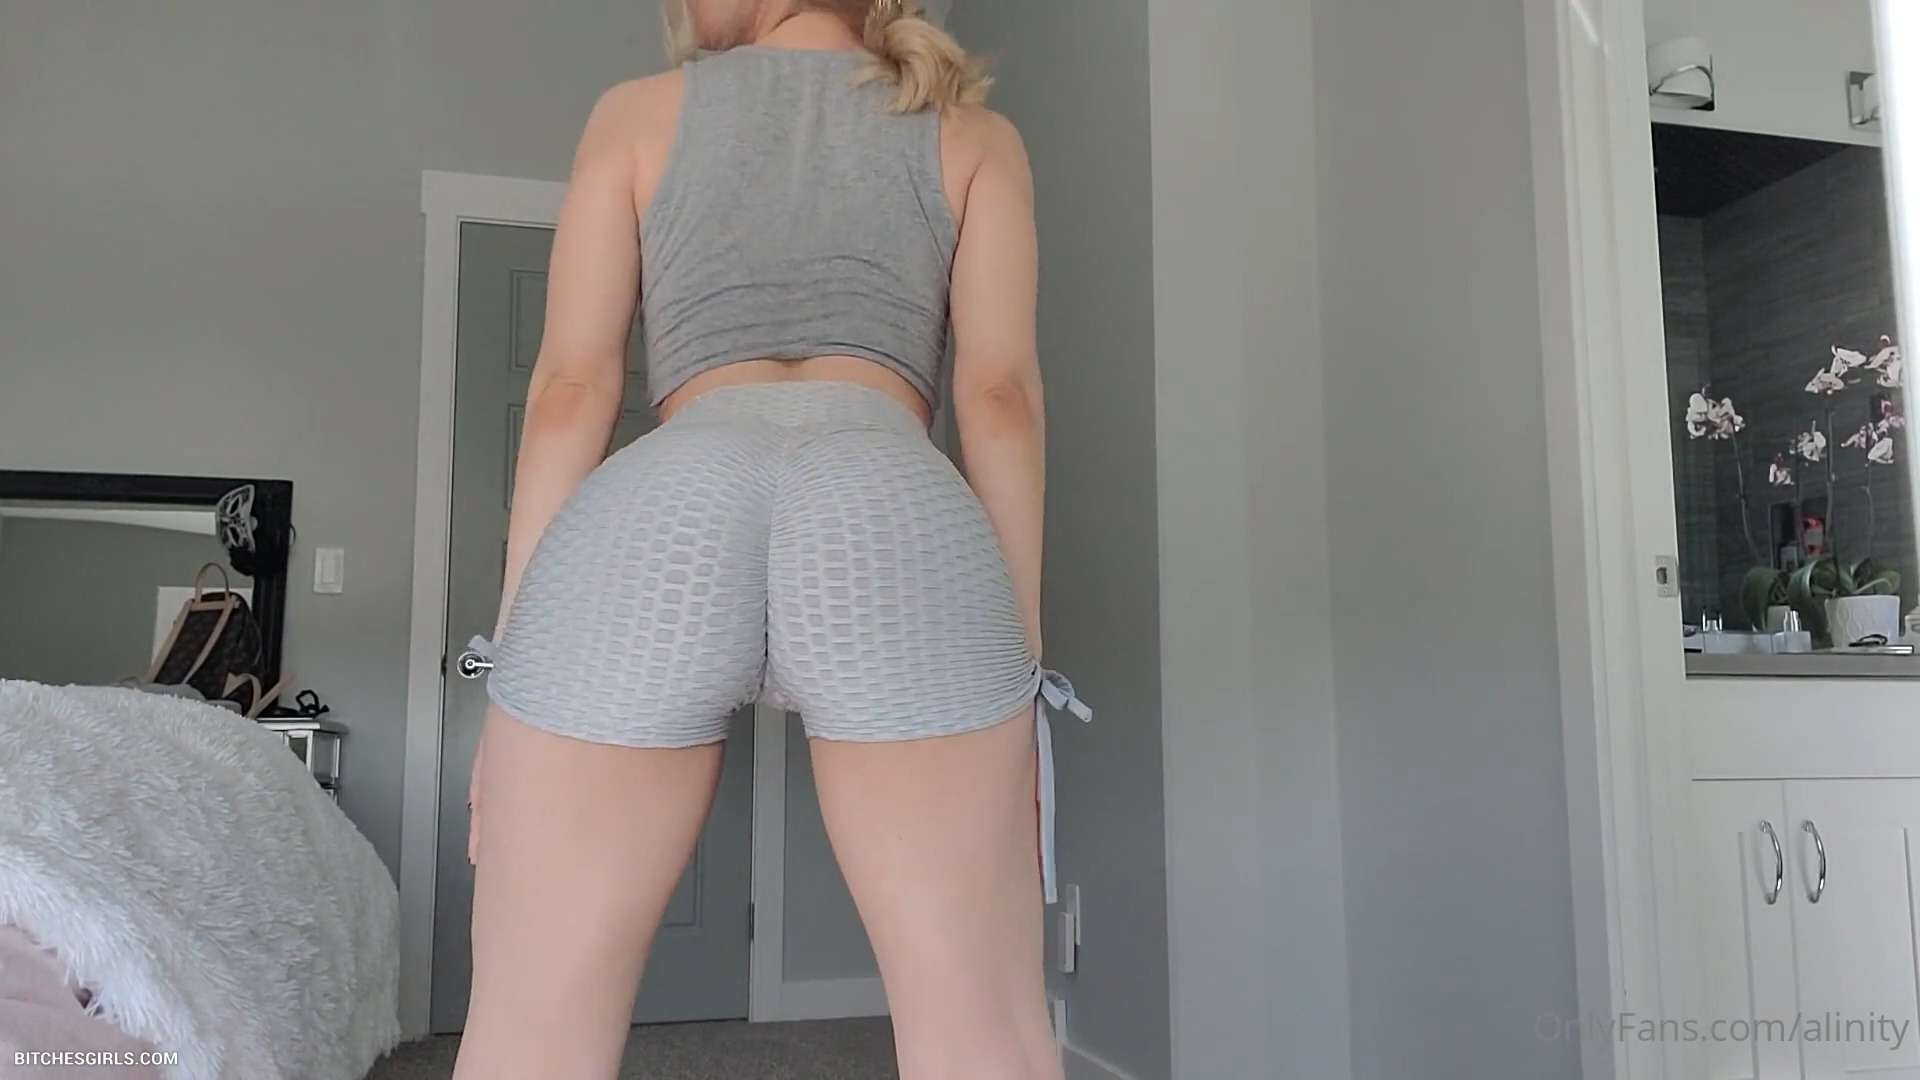 Alinity perfect ass in shorts doing squats - Alinity Nude OnlyFans Sensual Tits In Shower